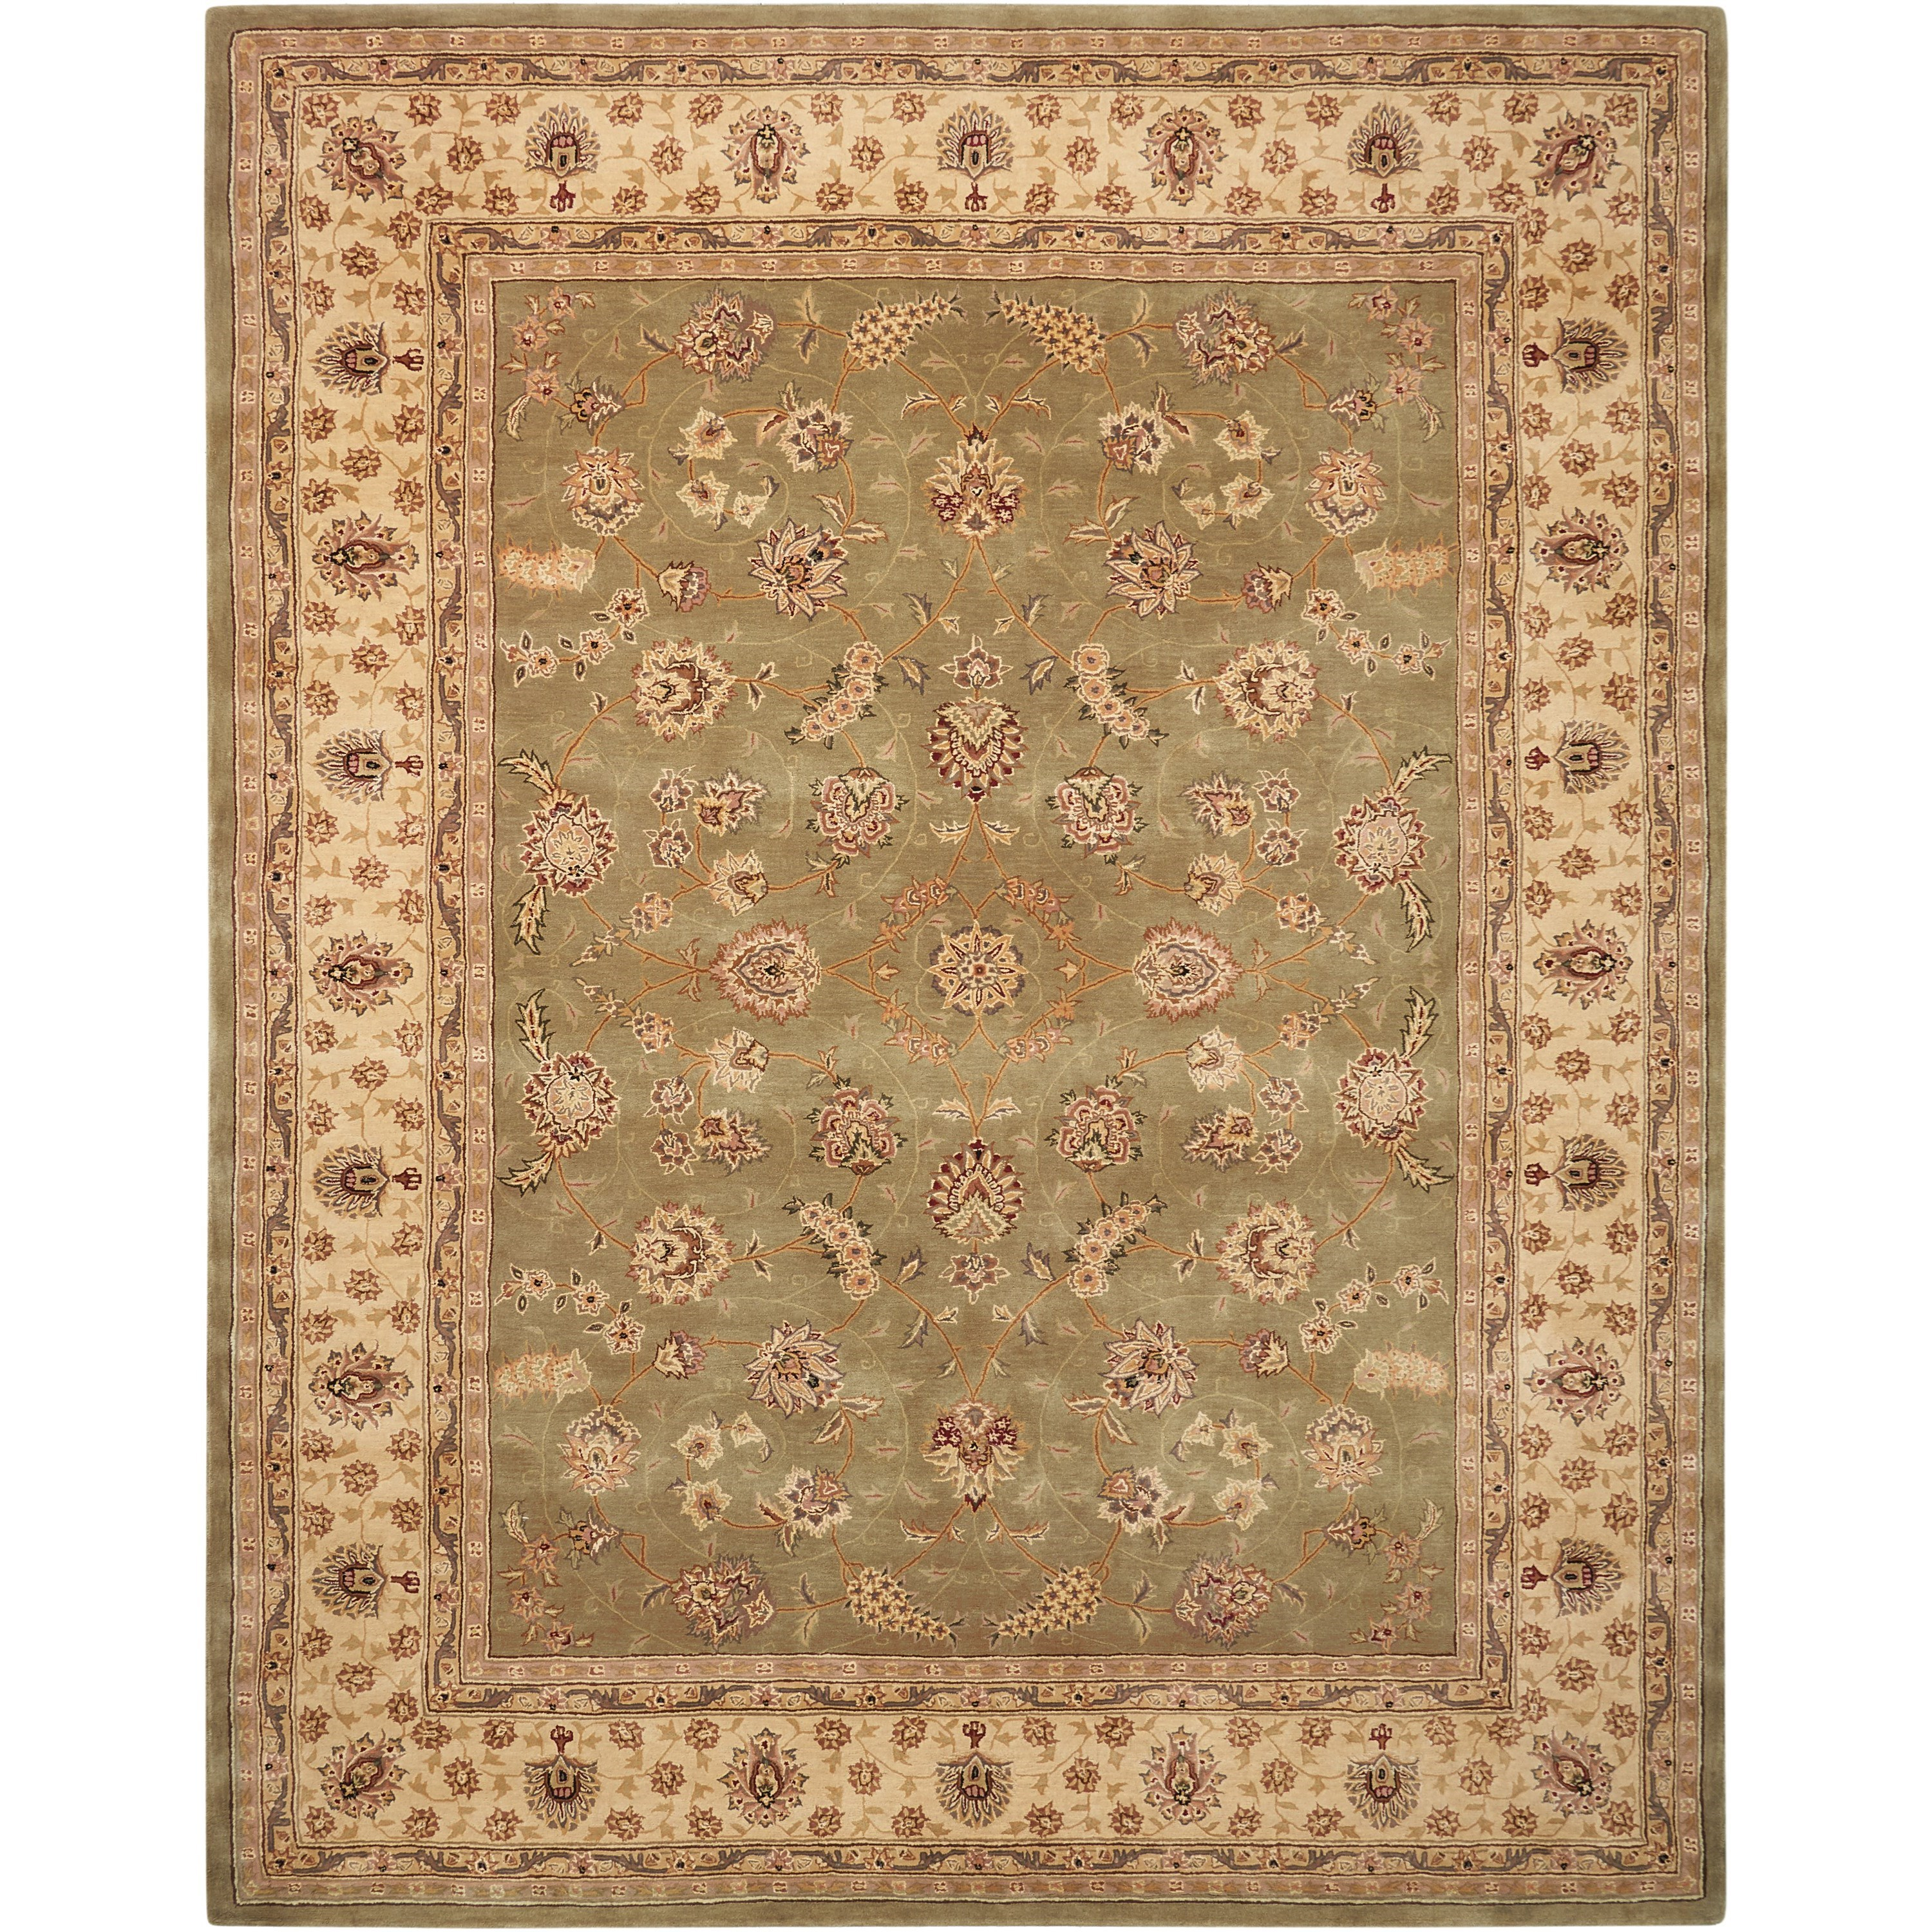 Nourison 2000 2000 2003 Olive 8'x10'  Area Rug by Nourison at Sprintz Furniture